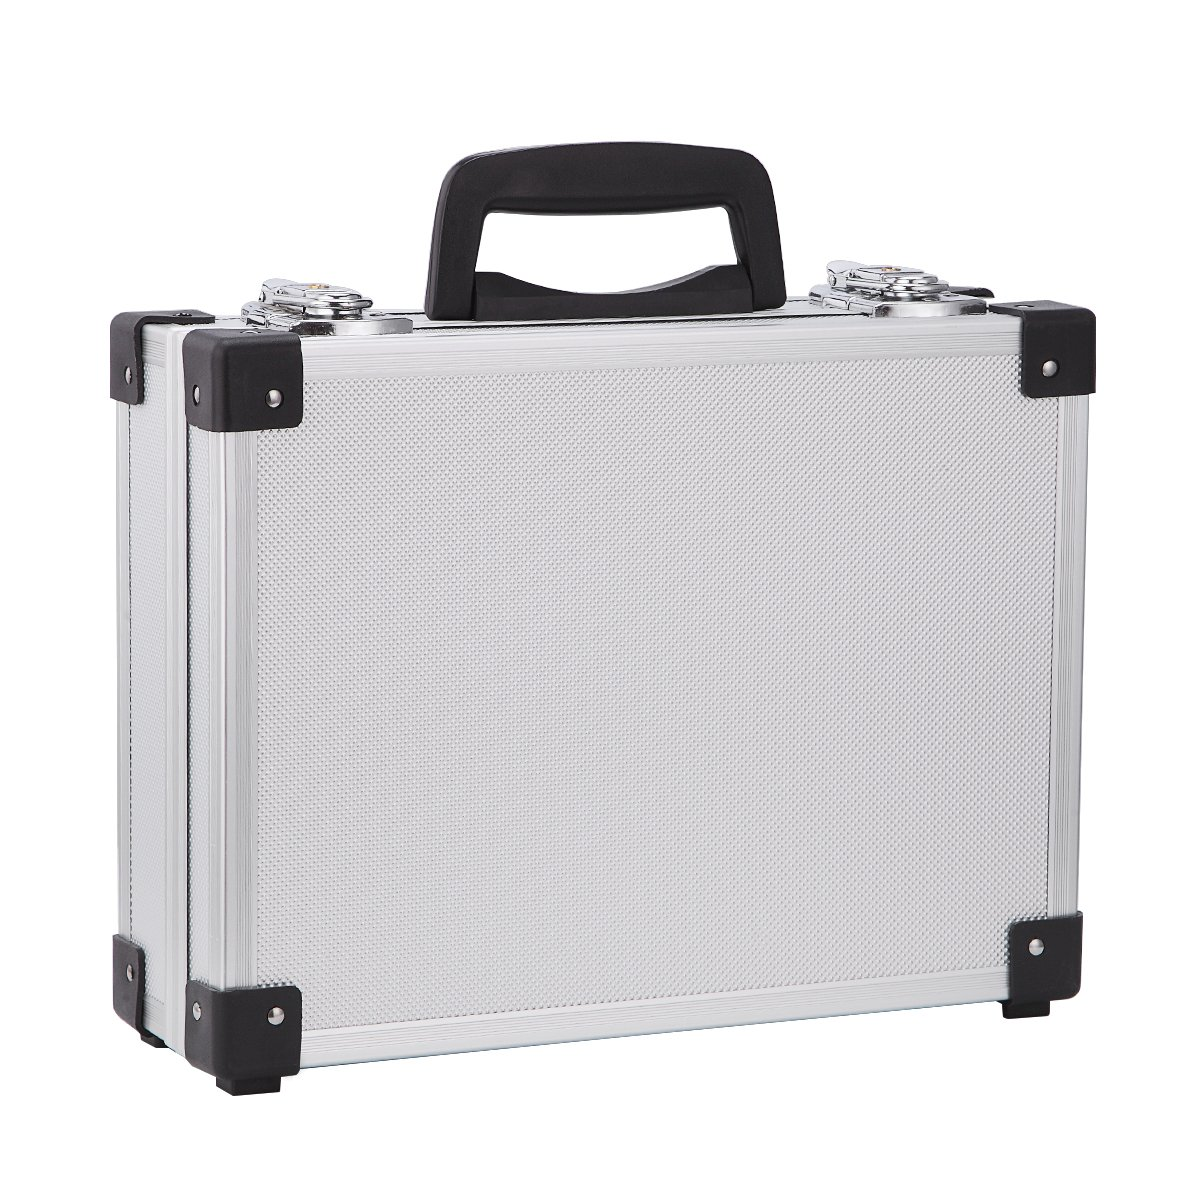 Professional Aluminum Hard Hand Gun Cases Office File Briefcase Outdoor Travel Flight Cases Home Tool Boxes with Quick Locks by ALUBOX (Image #3)